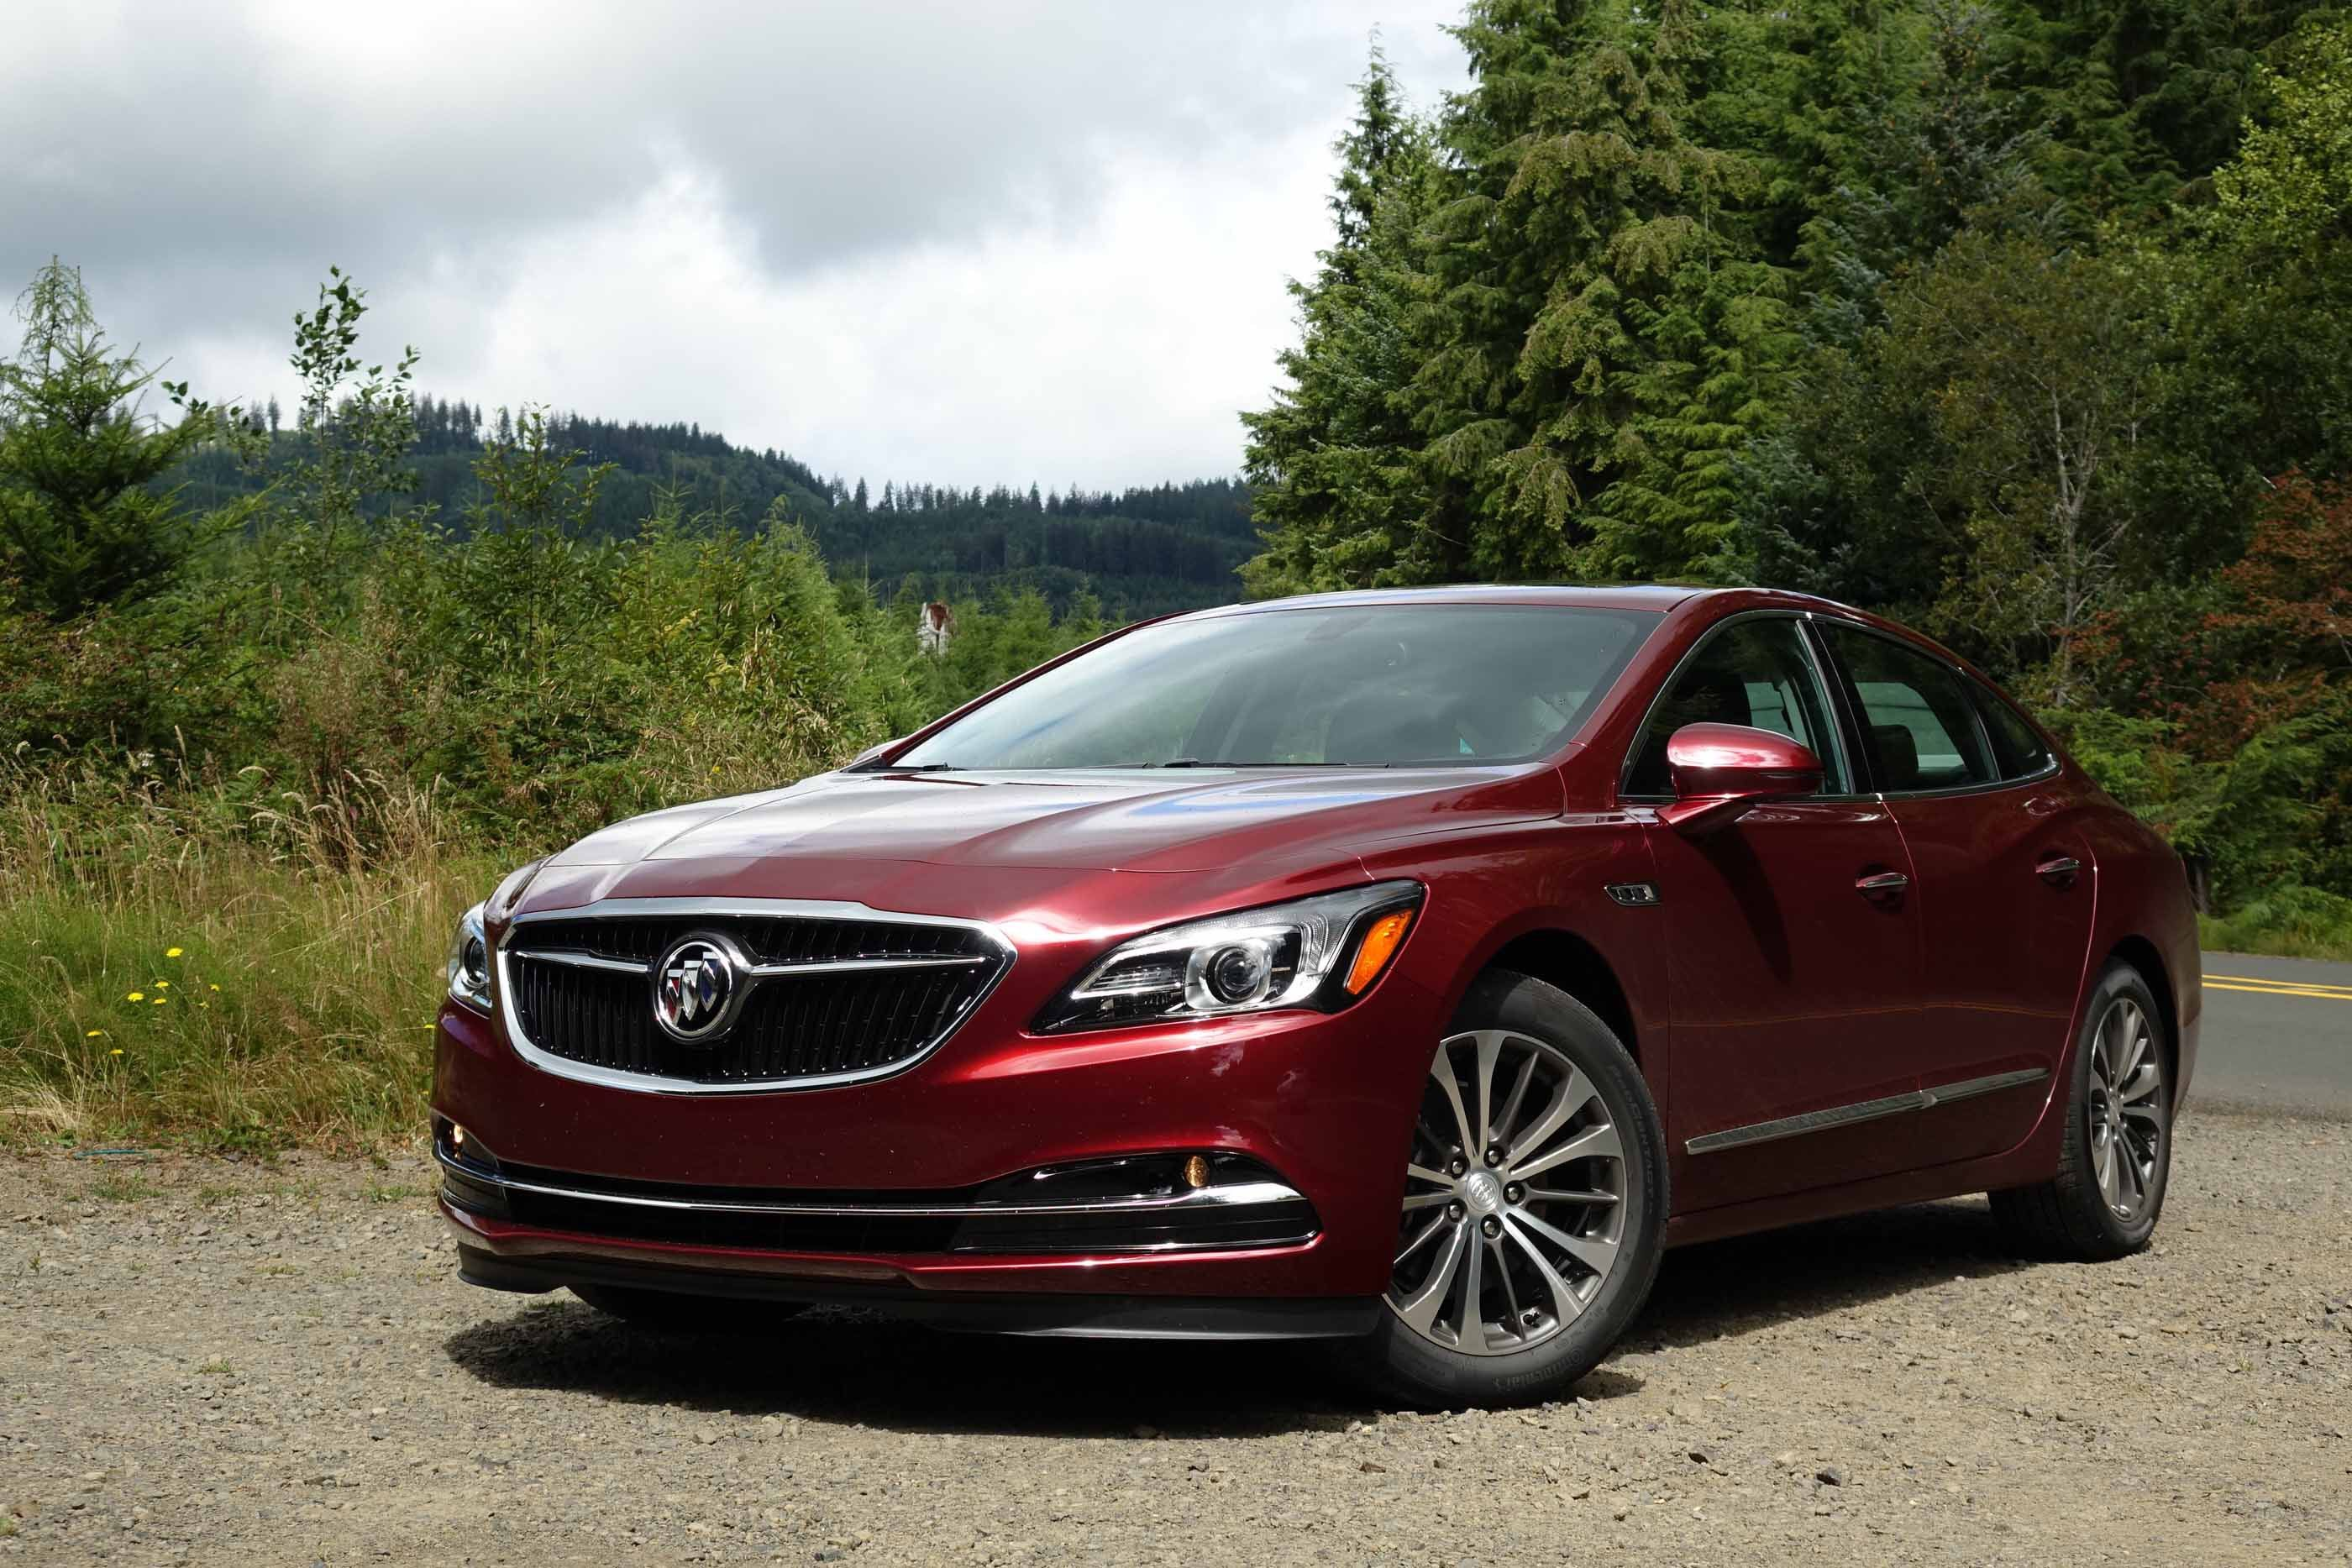 Buick Lacrosse Very Nice And Luxurious Car Buick Lacrosse Buick Lesabre Buick